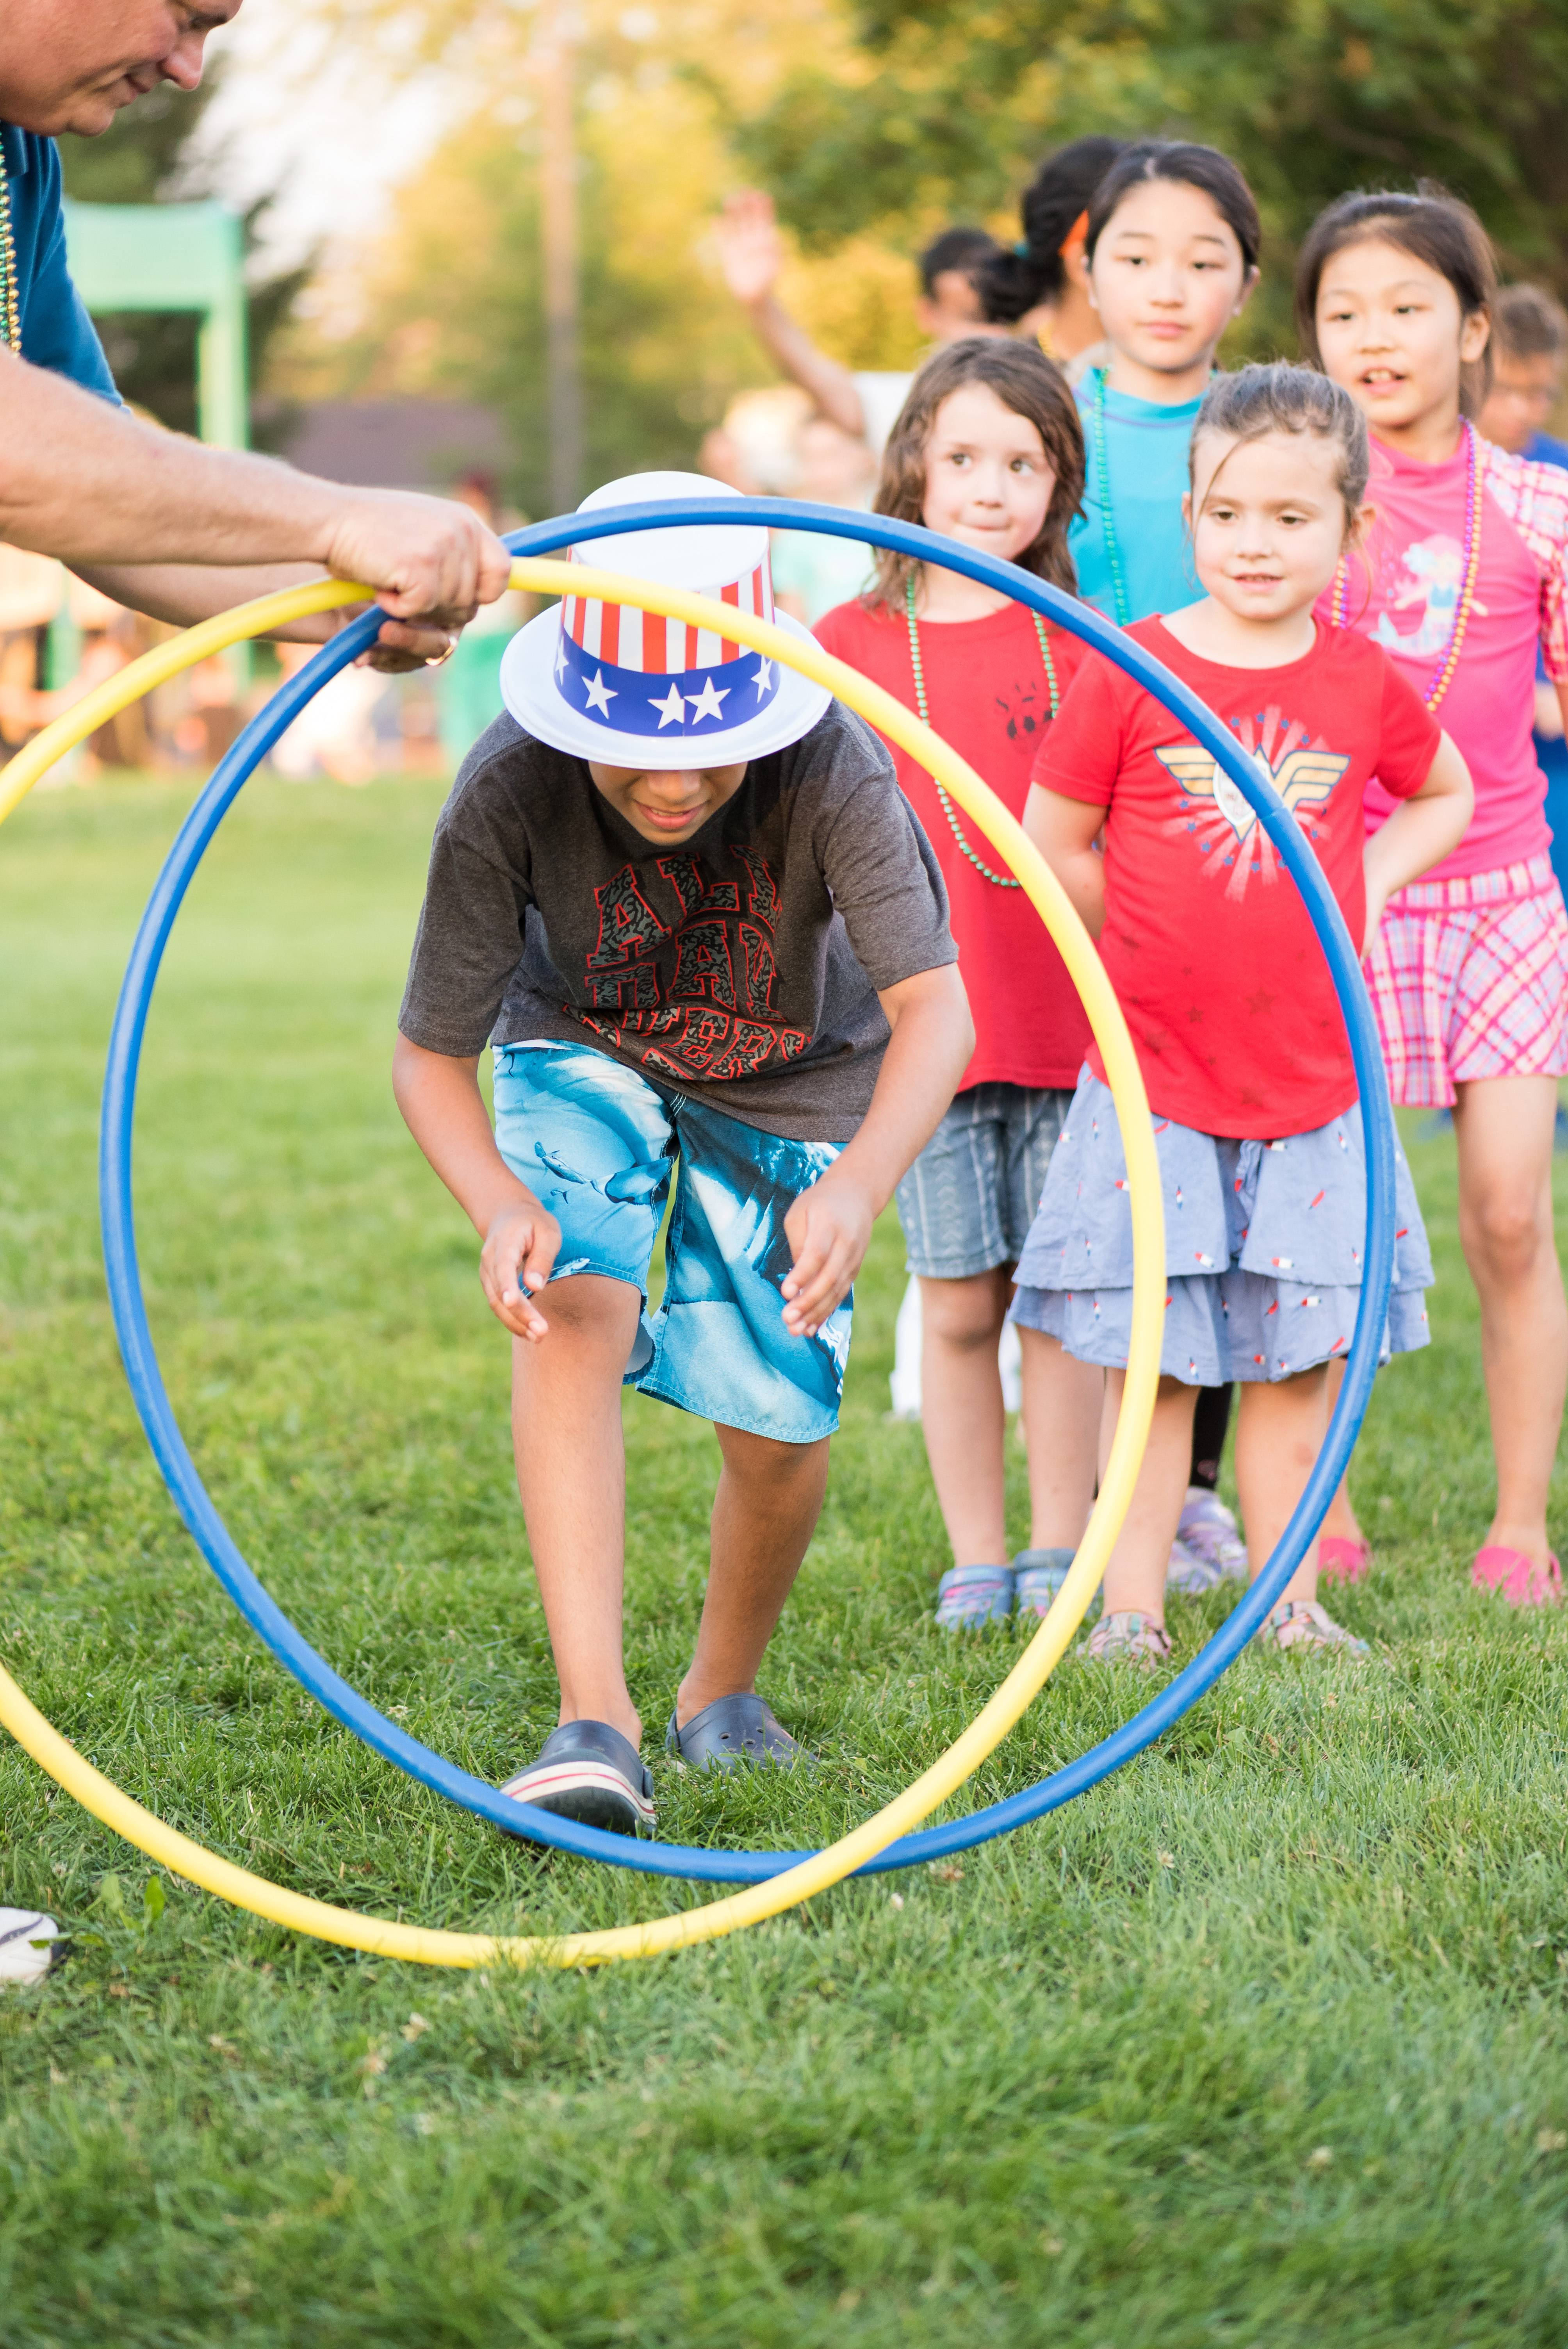 Schaumburg National Night Out events on Aug. 7 will feature games, contests, sidewalk chalk, a D.J. and open swim at Meineke Pool.